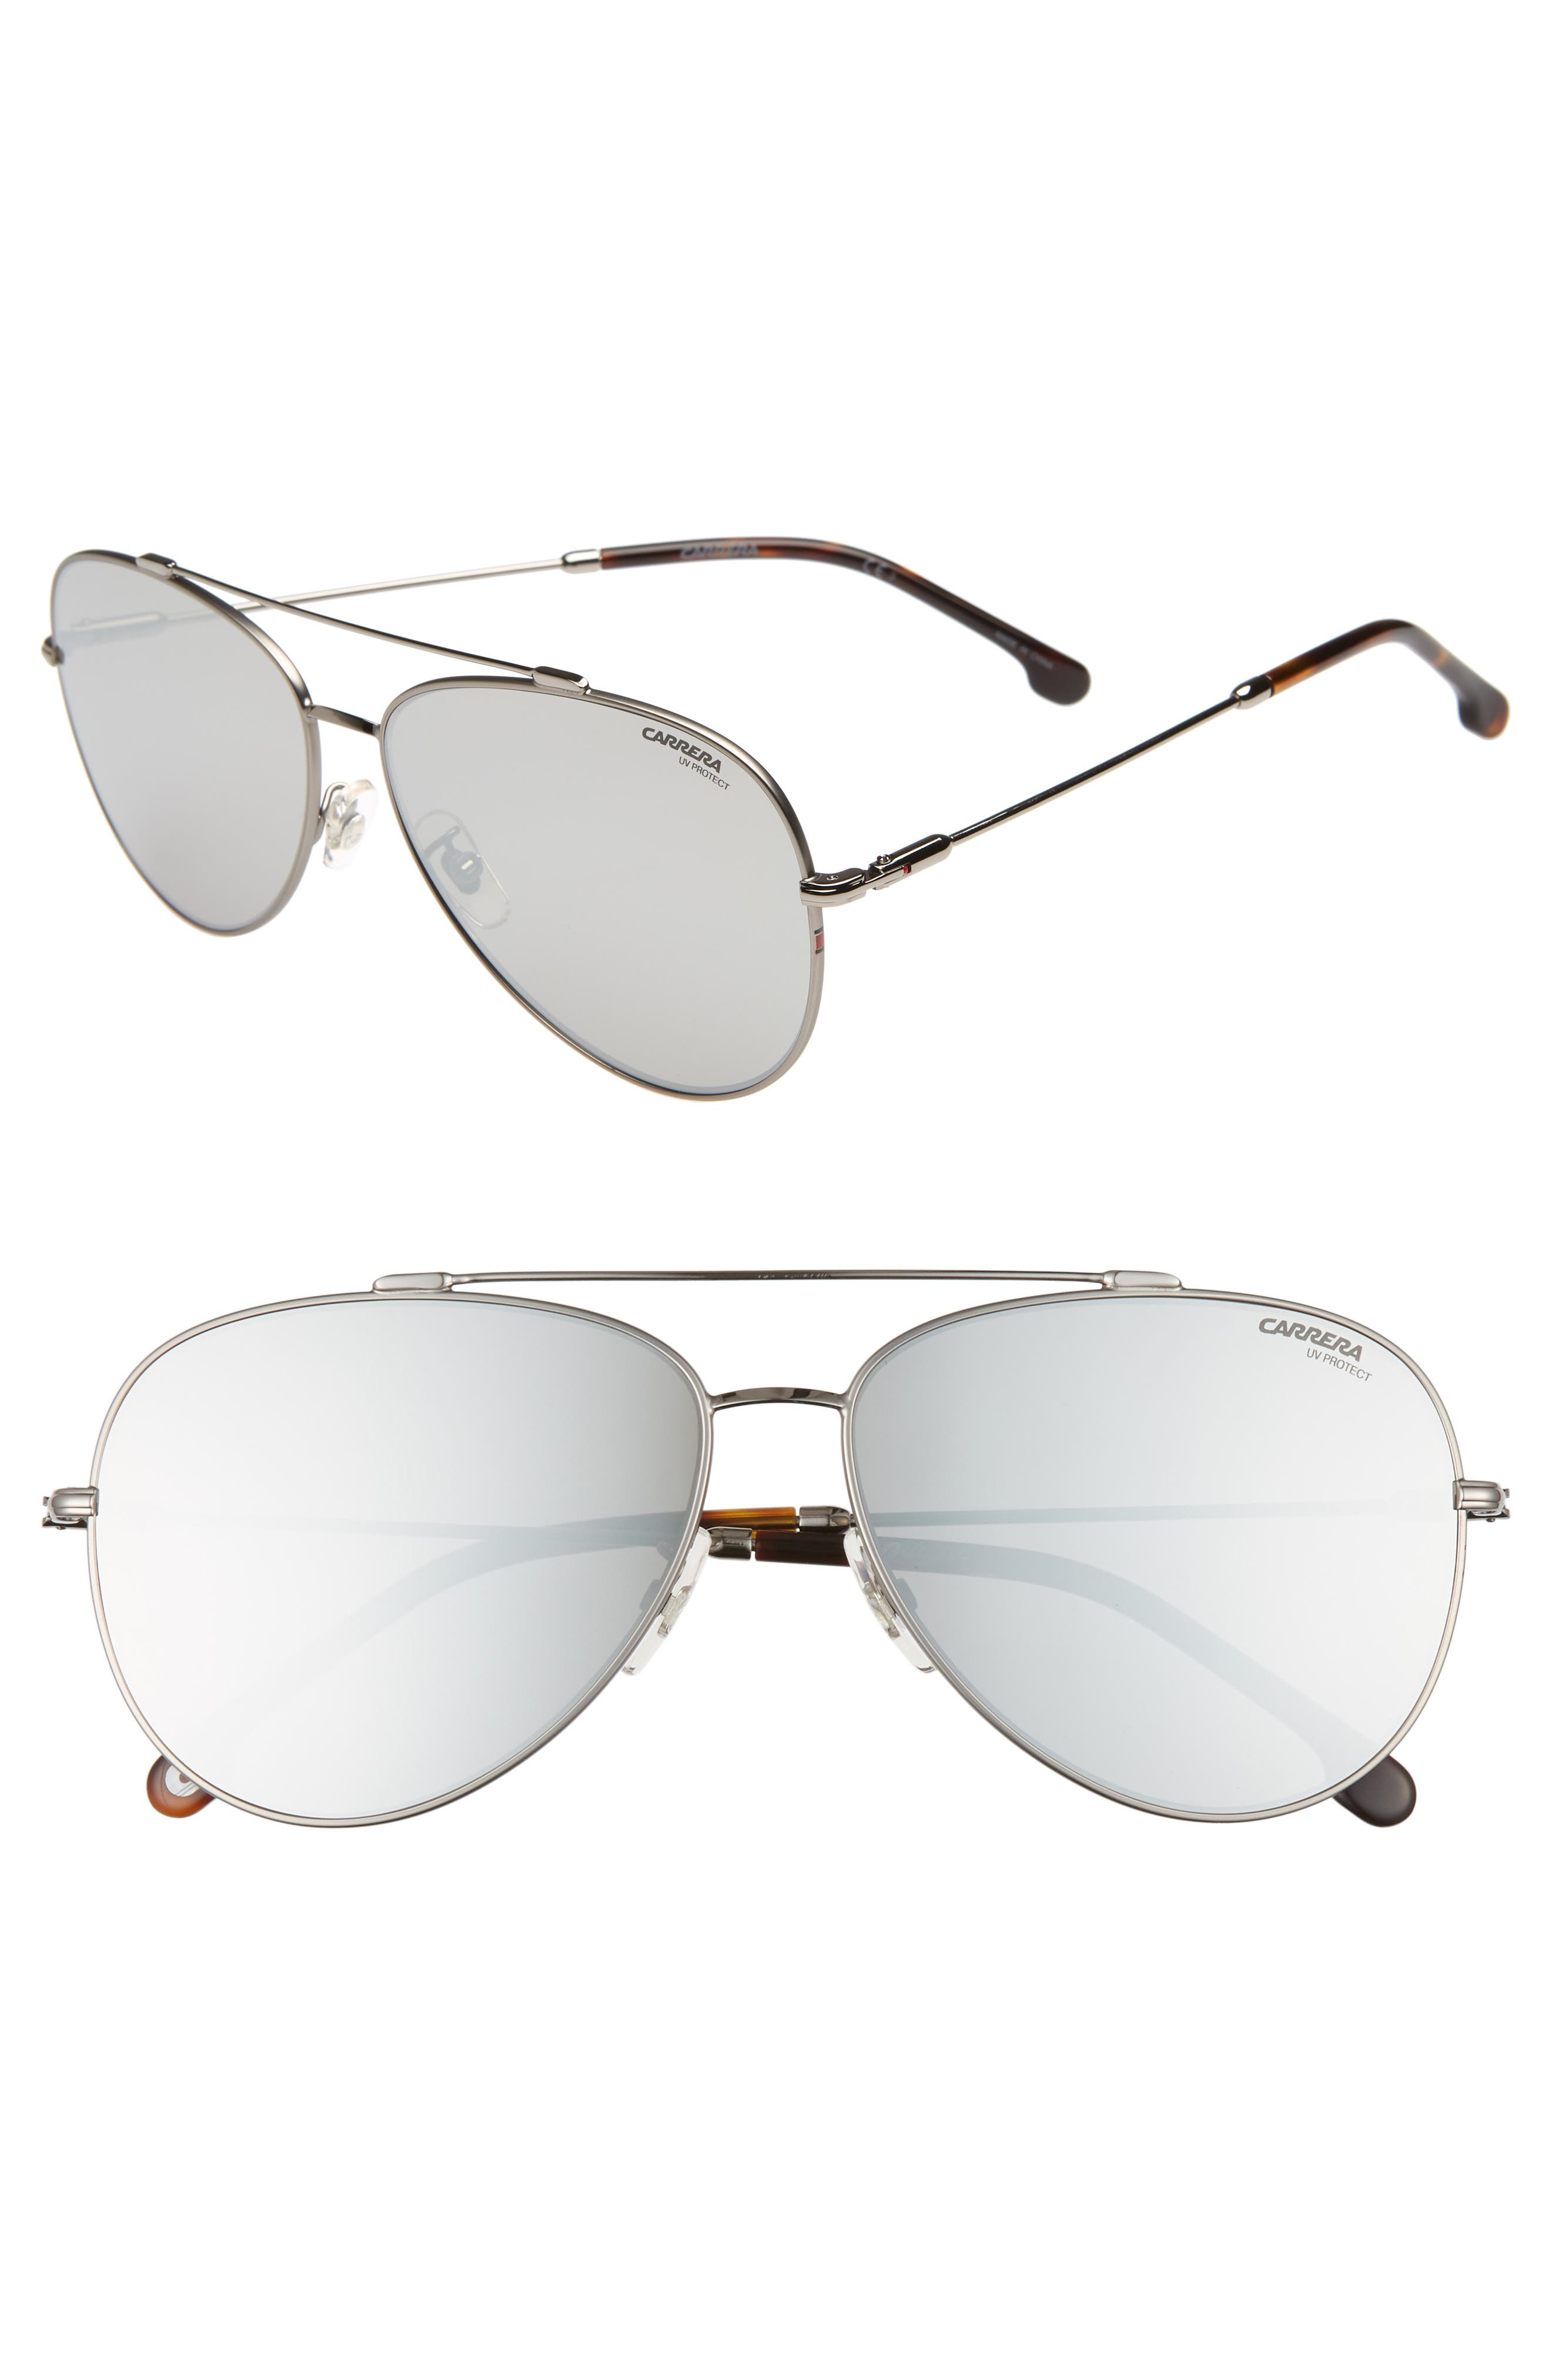 62mm Aviator Sunglasses,                         Main,                         color, RUTHENIUM